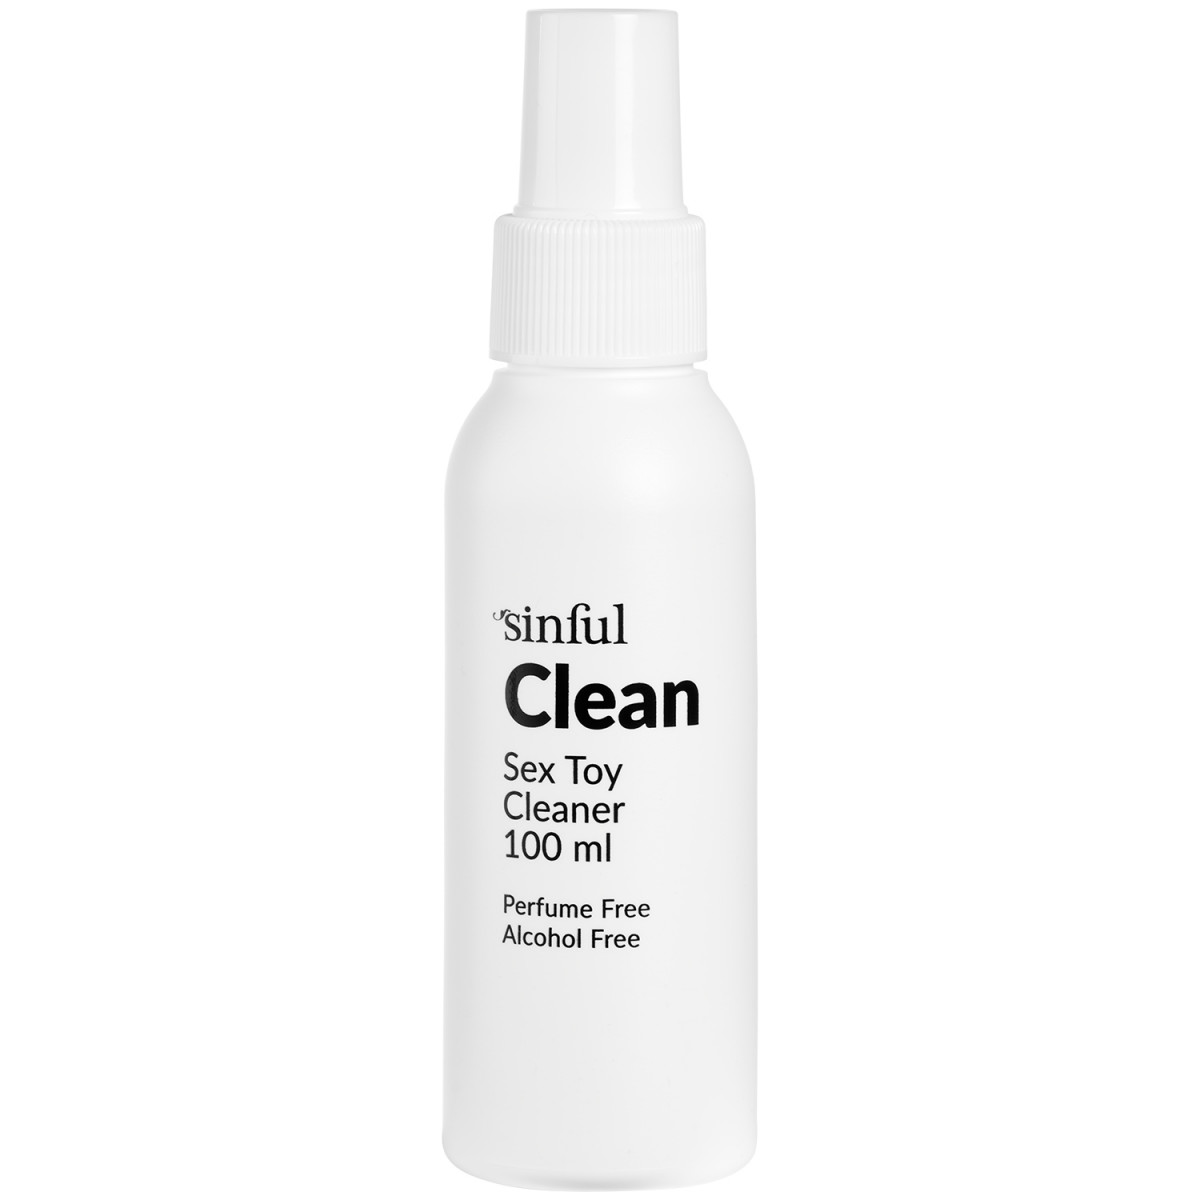 Sinful Clean